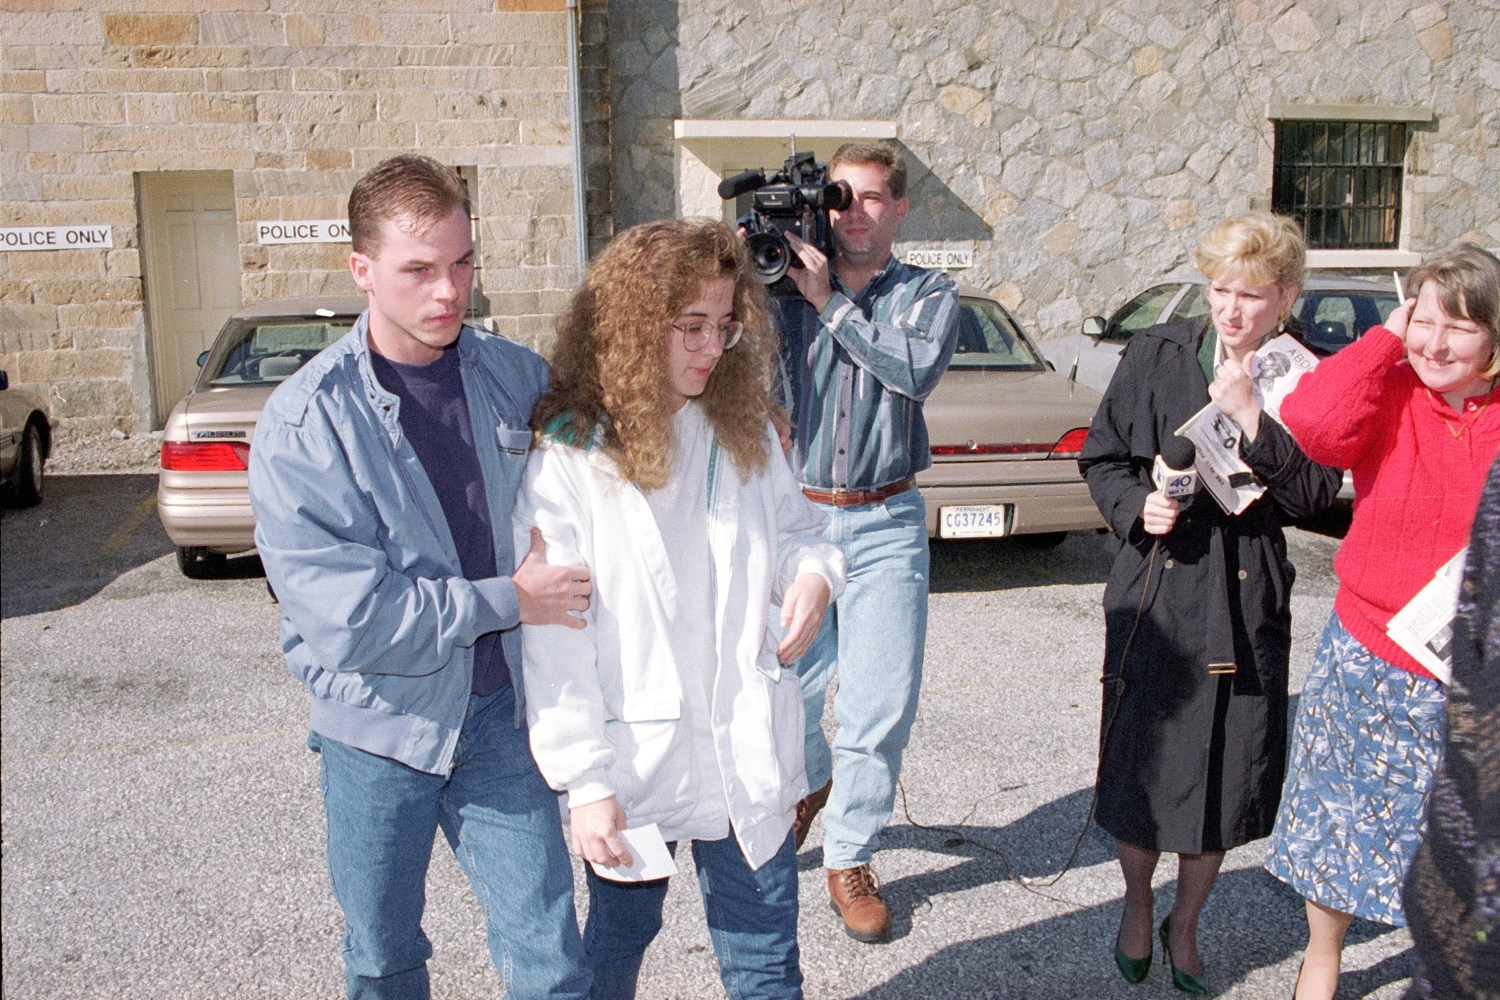 susan smith: child killer who drove her young sons into a lake is on her best behavior as parole date nears